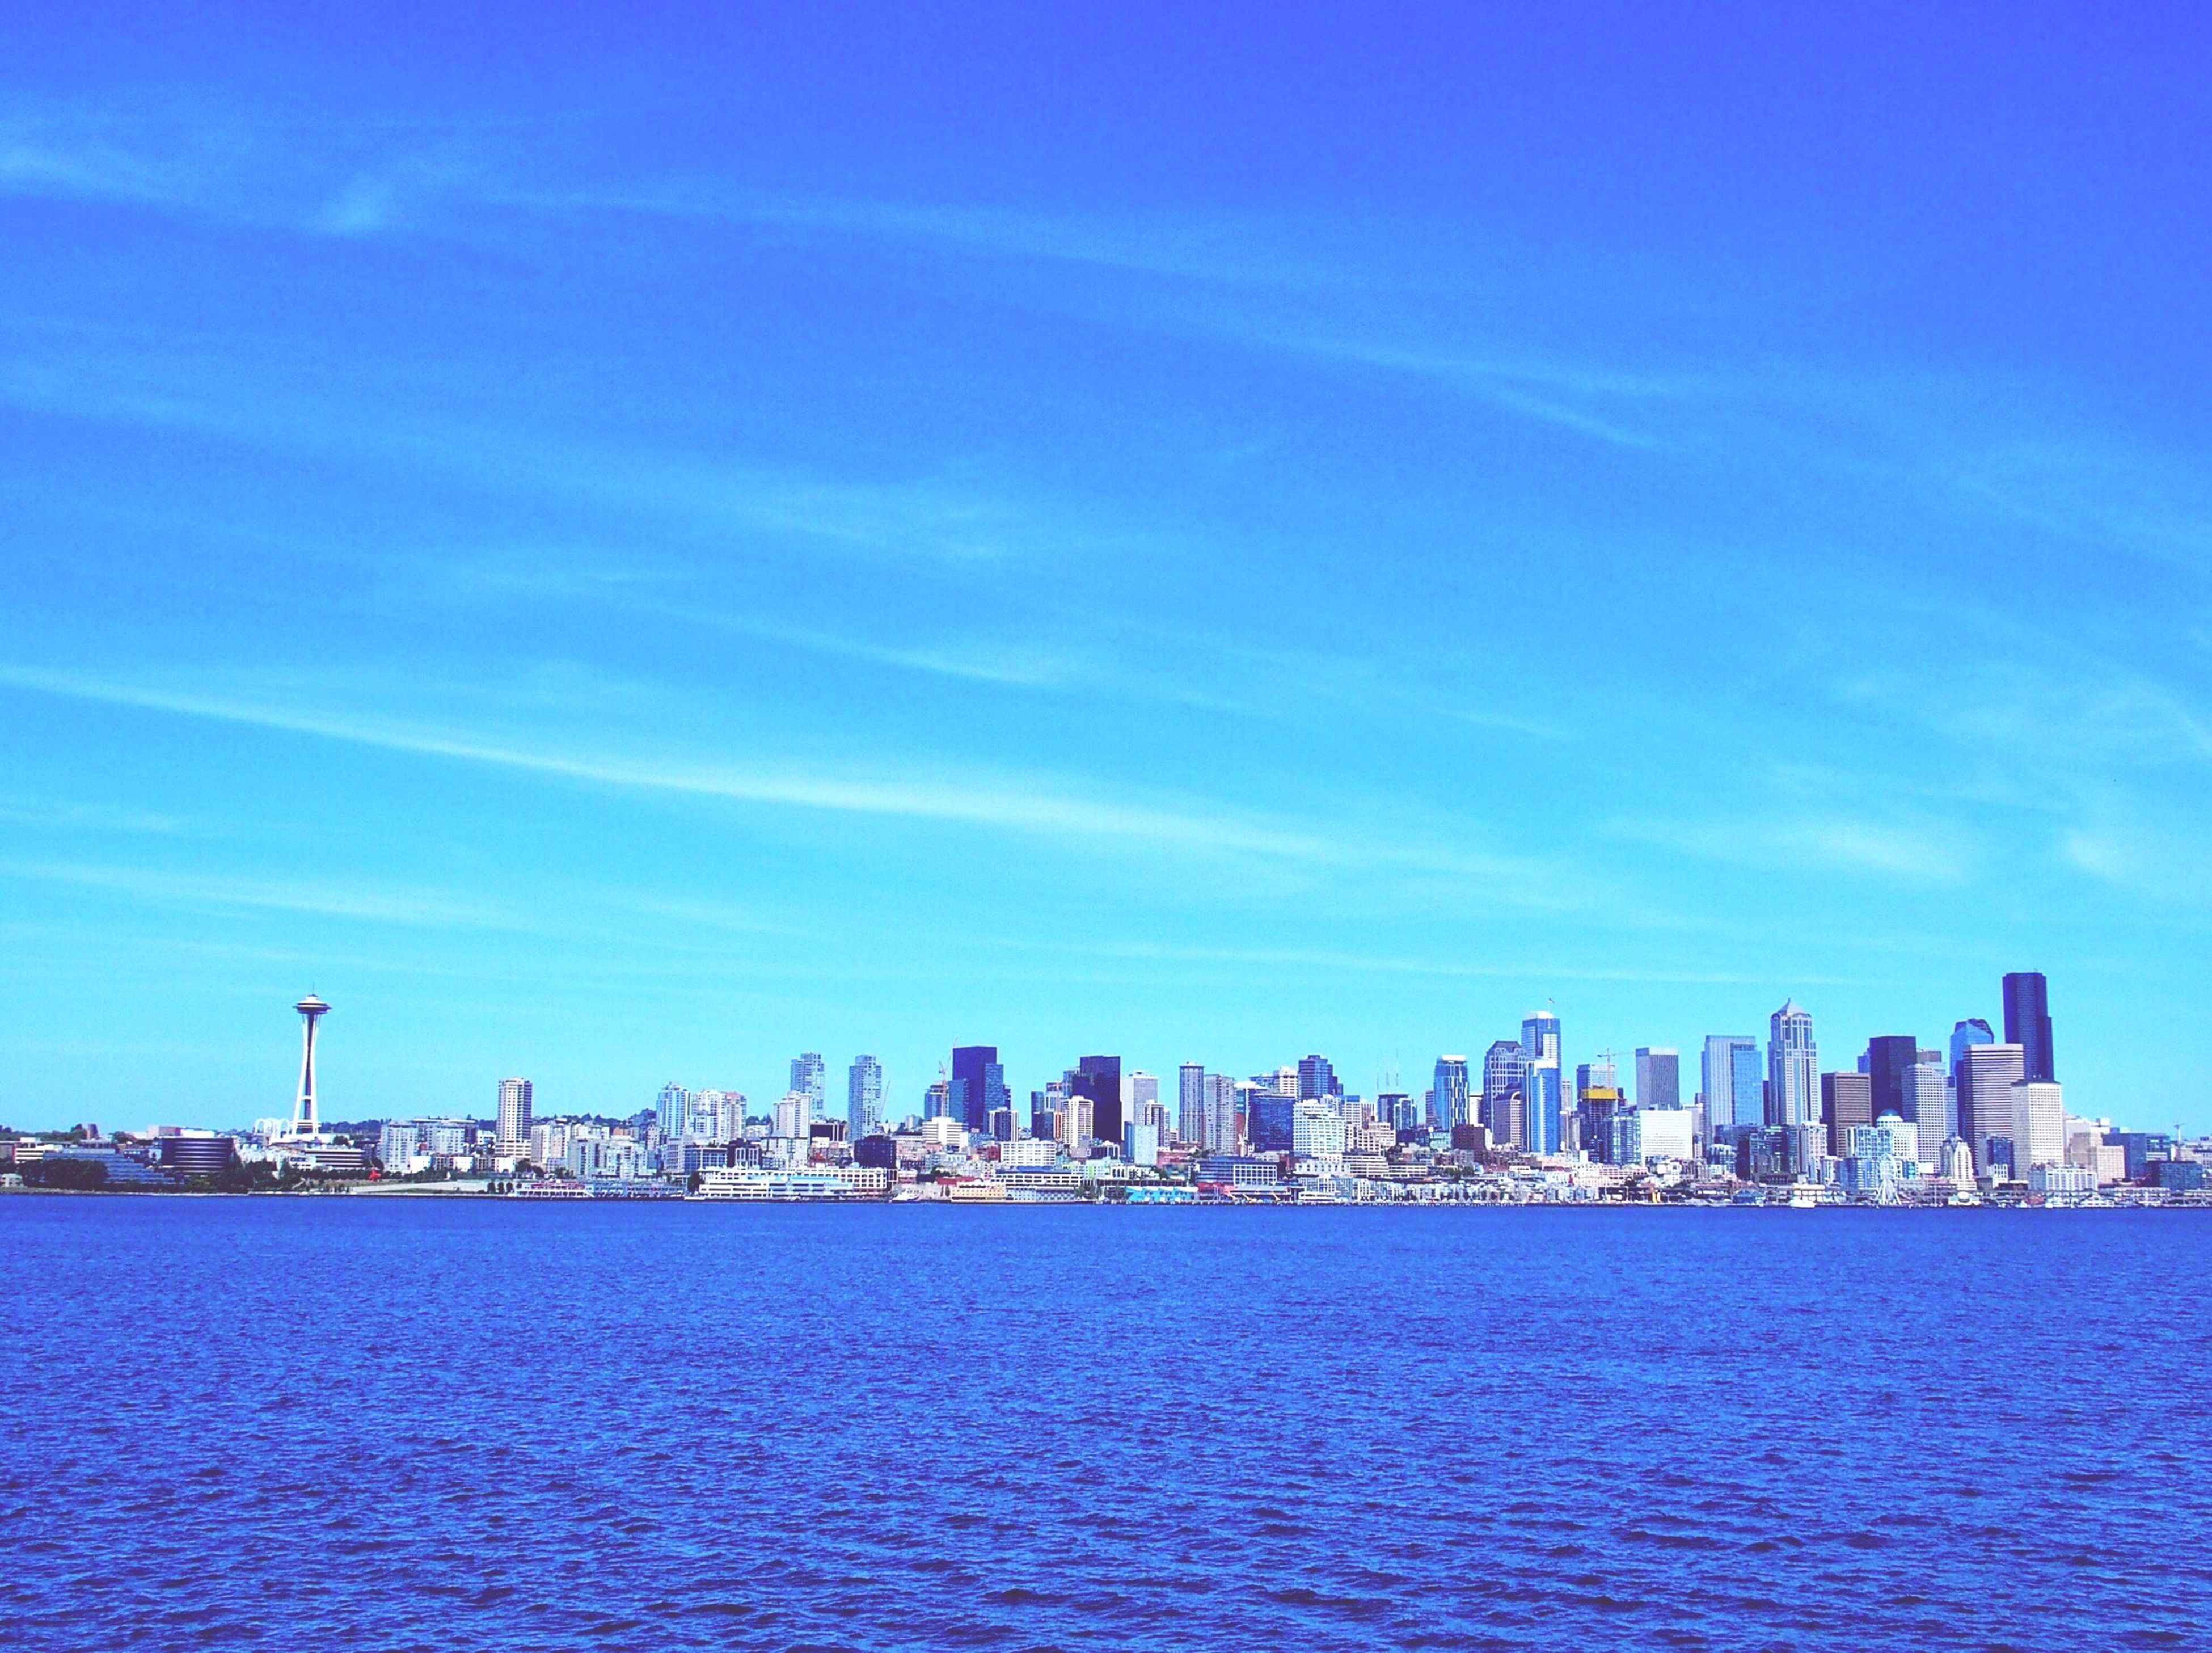 architecture, skyscraper, building exterior, cityscape, built structure, city, sky, blue, waterfront, urban skyline, sea, day, water, outdoors, no people, downtown district, modern, nature